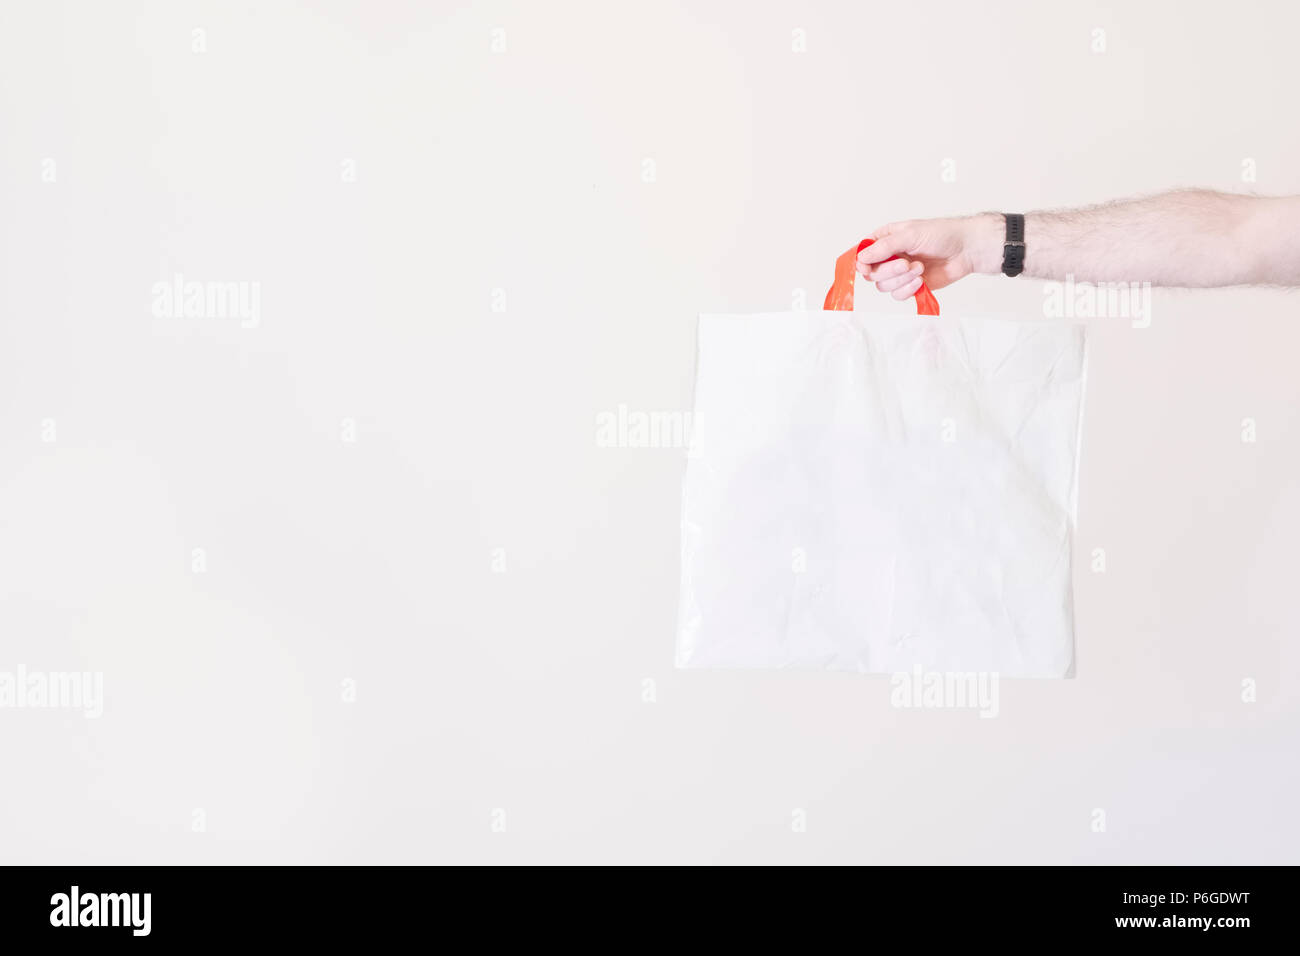 Blank plastic bag white background arm stretch out holding recycle plastic non biodegradable - Stock Image